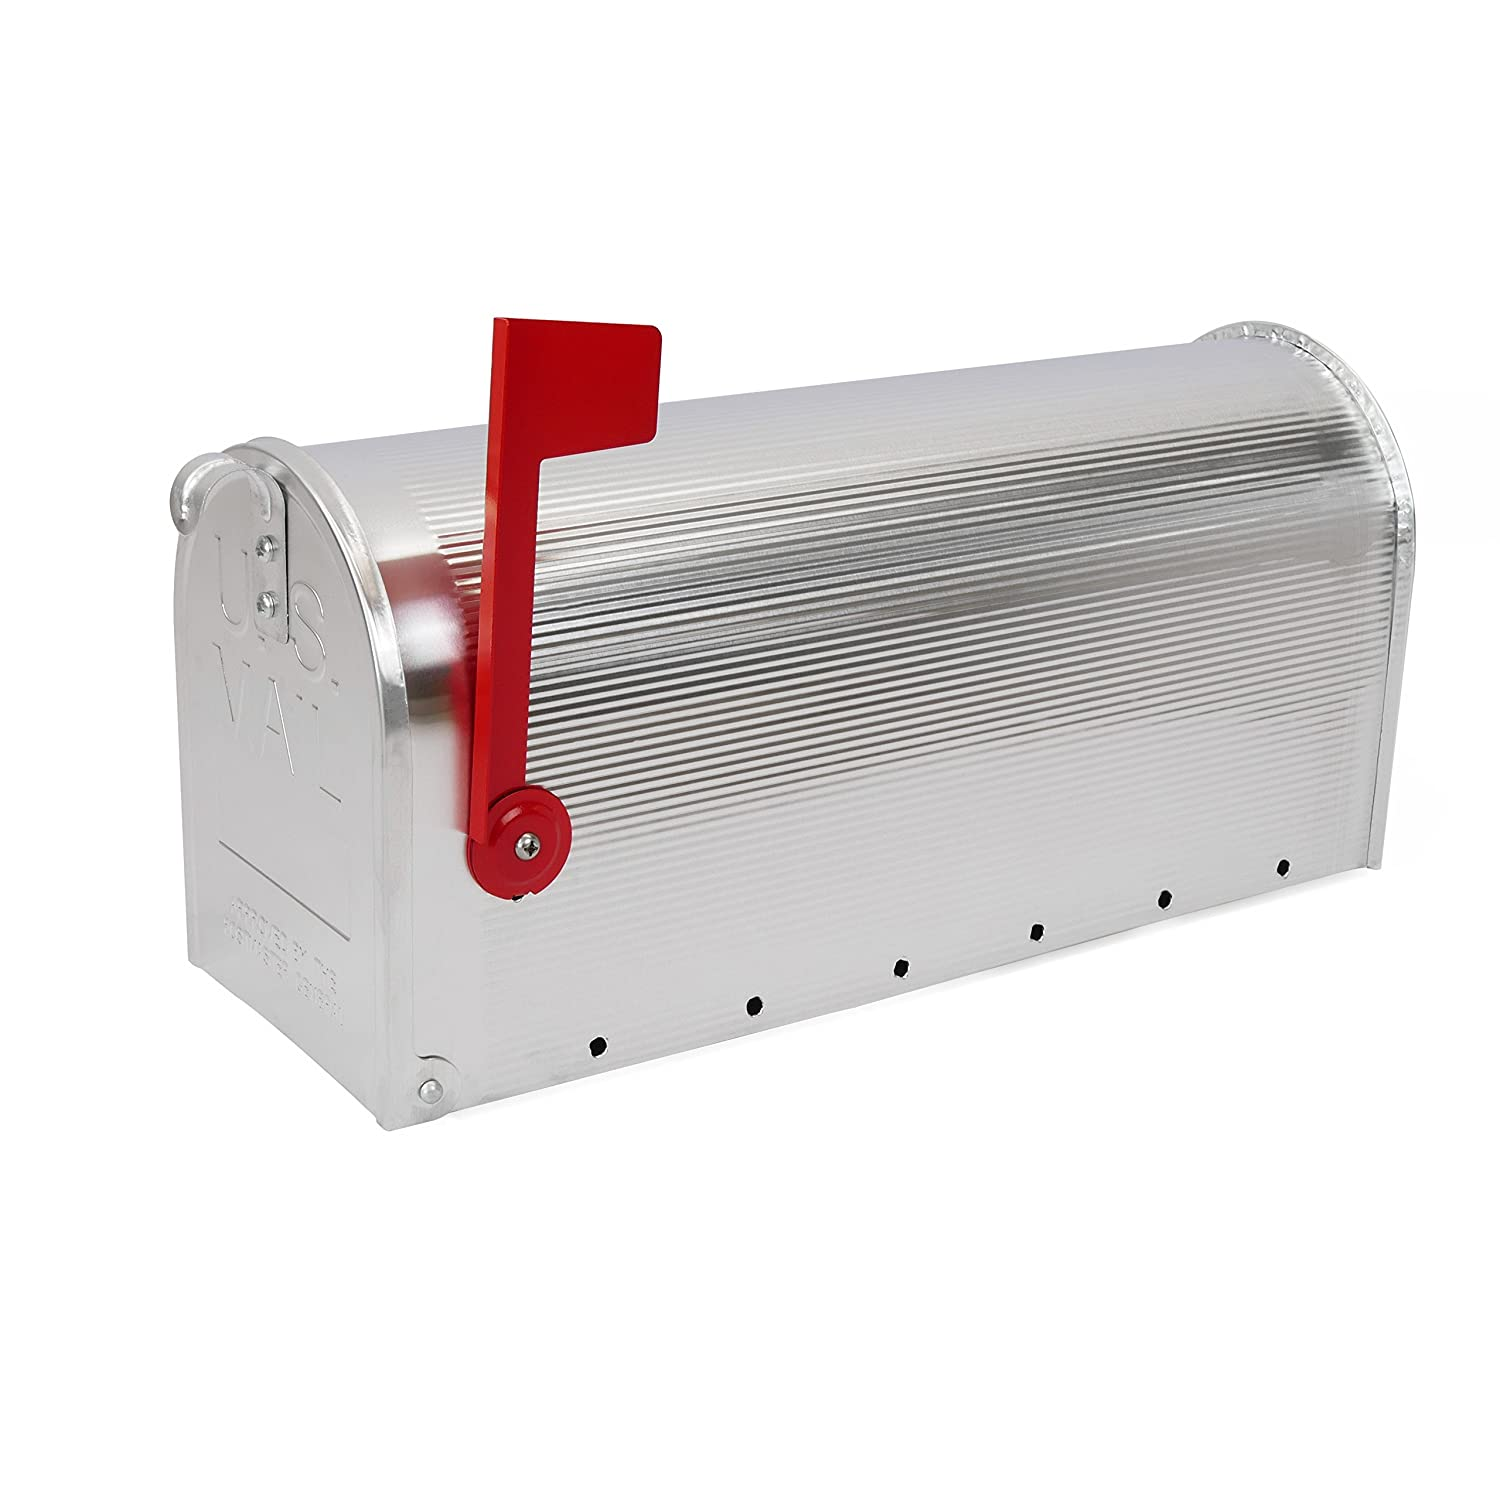 Cablematic  –   US Mail Mailbox for Mail Aluminium Design Postcard American) Color Silver PN26051618200173656